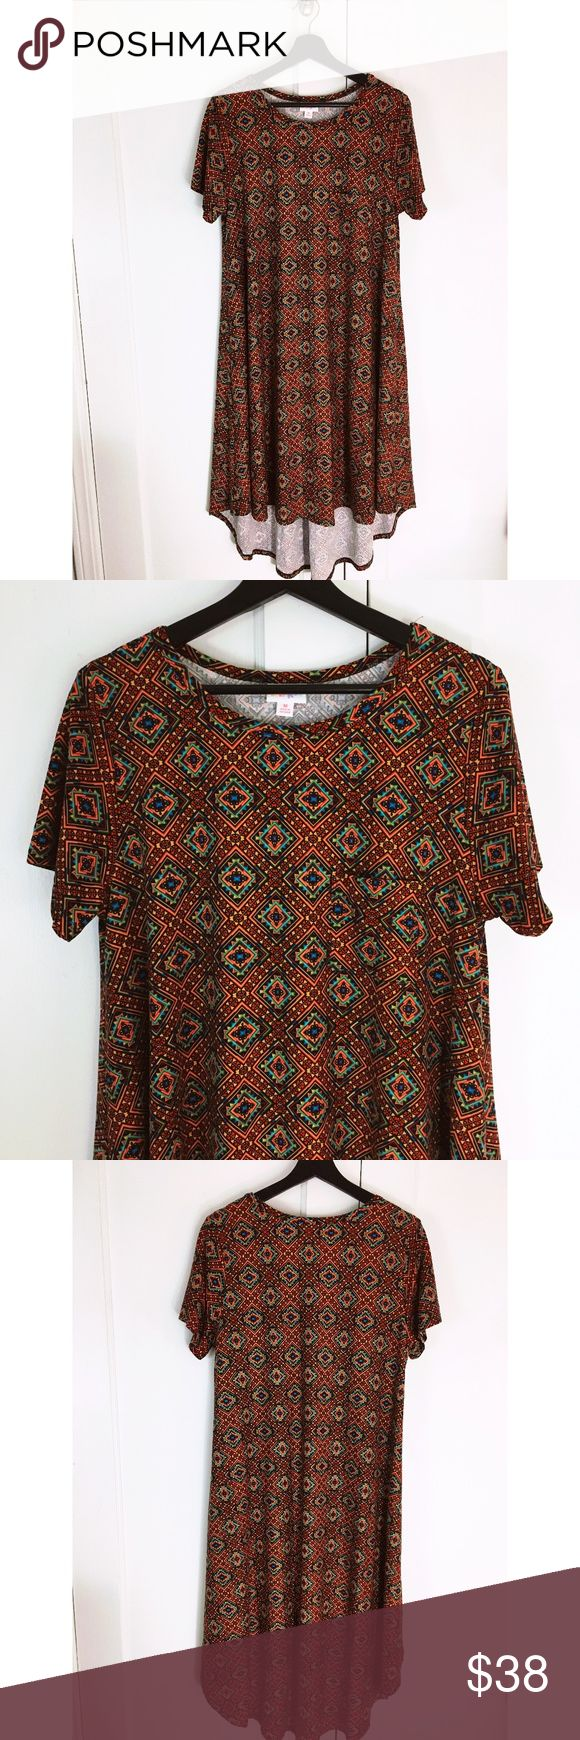 Lularoe Carly Hi Lo Tribal Aztec Print Dress Sz M Lularoe Carly Dress Aztec / Tribal / Southwestern Print  Chest Pocket High Low Hem  Made of 92% Polyester and 8% Spandex Super Soft -  Care instructions -  Hang to dry - NO DRYER Size Medium Bust is approx 19 inches measured flat Length is approx 44 at the longest point In excellent preowned condition - no sign of wear , no flaws - like new. LuLaRoe Dresses High Low